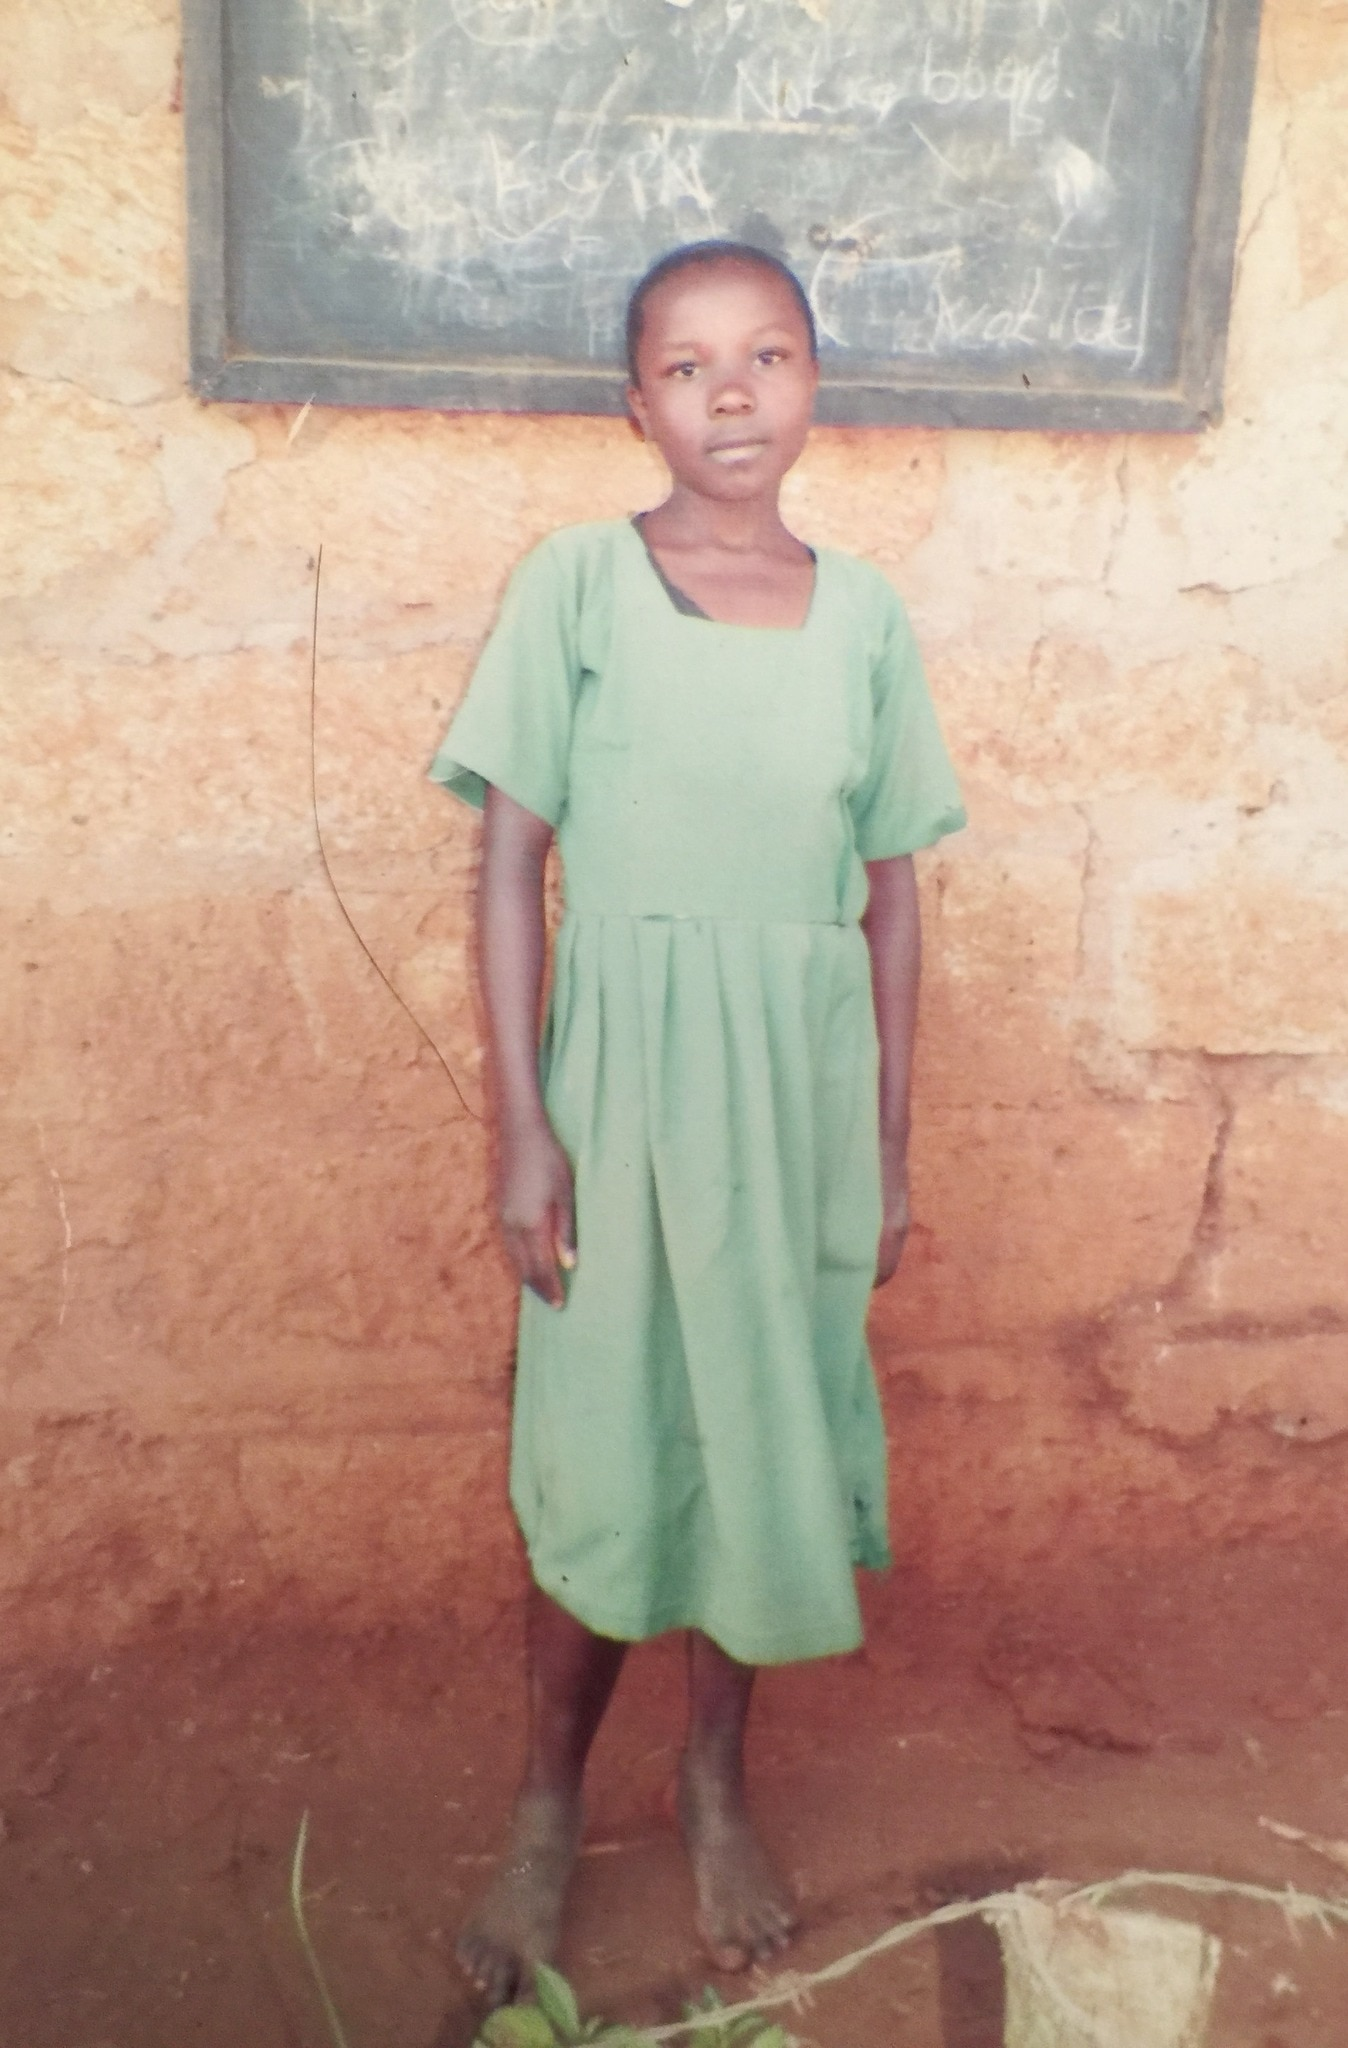 This is Pamela; she is in 5th grade.  She is an orphan.  People in the impoverished community contributed money until they could make her a dress.  Thanks to my Synagogue, Pamela is sponsored and can now go to school.